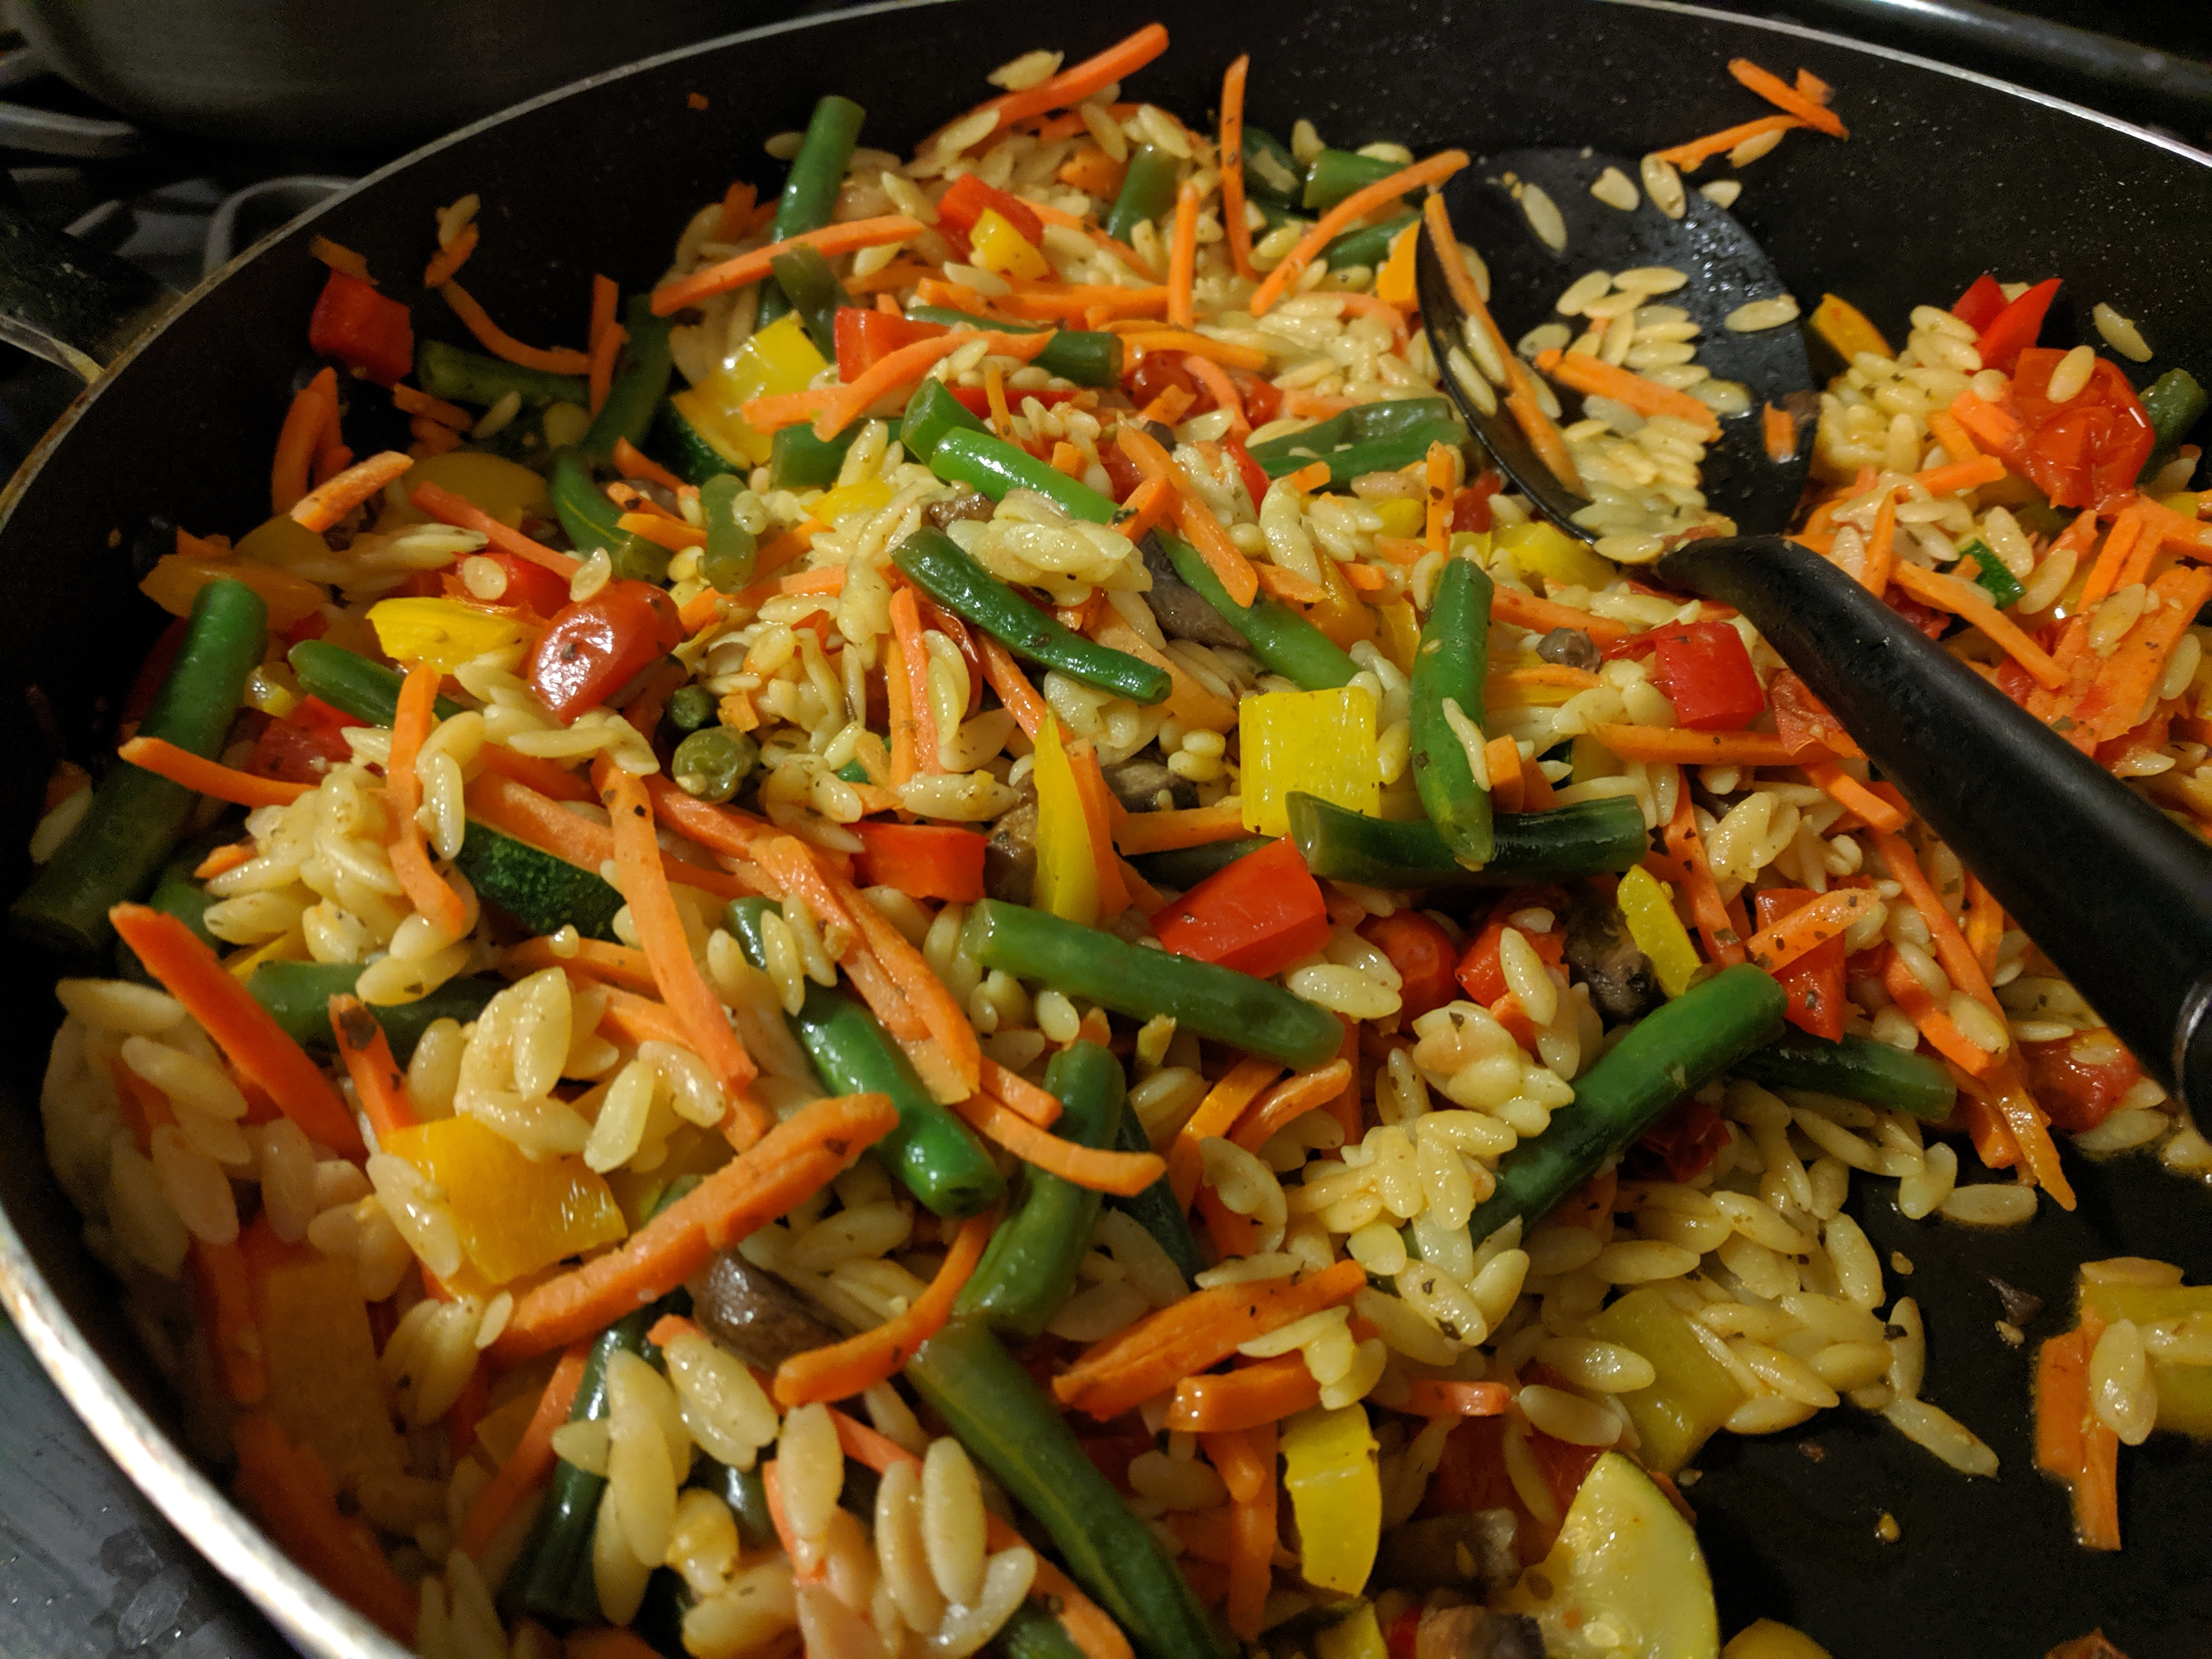 Image of Lemon Garlic Orzo with Veggies